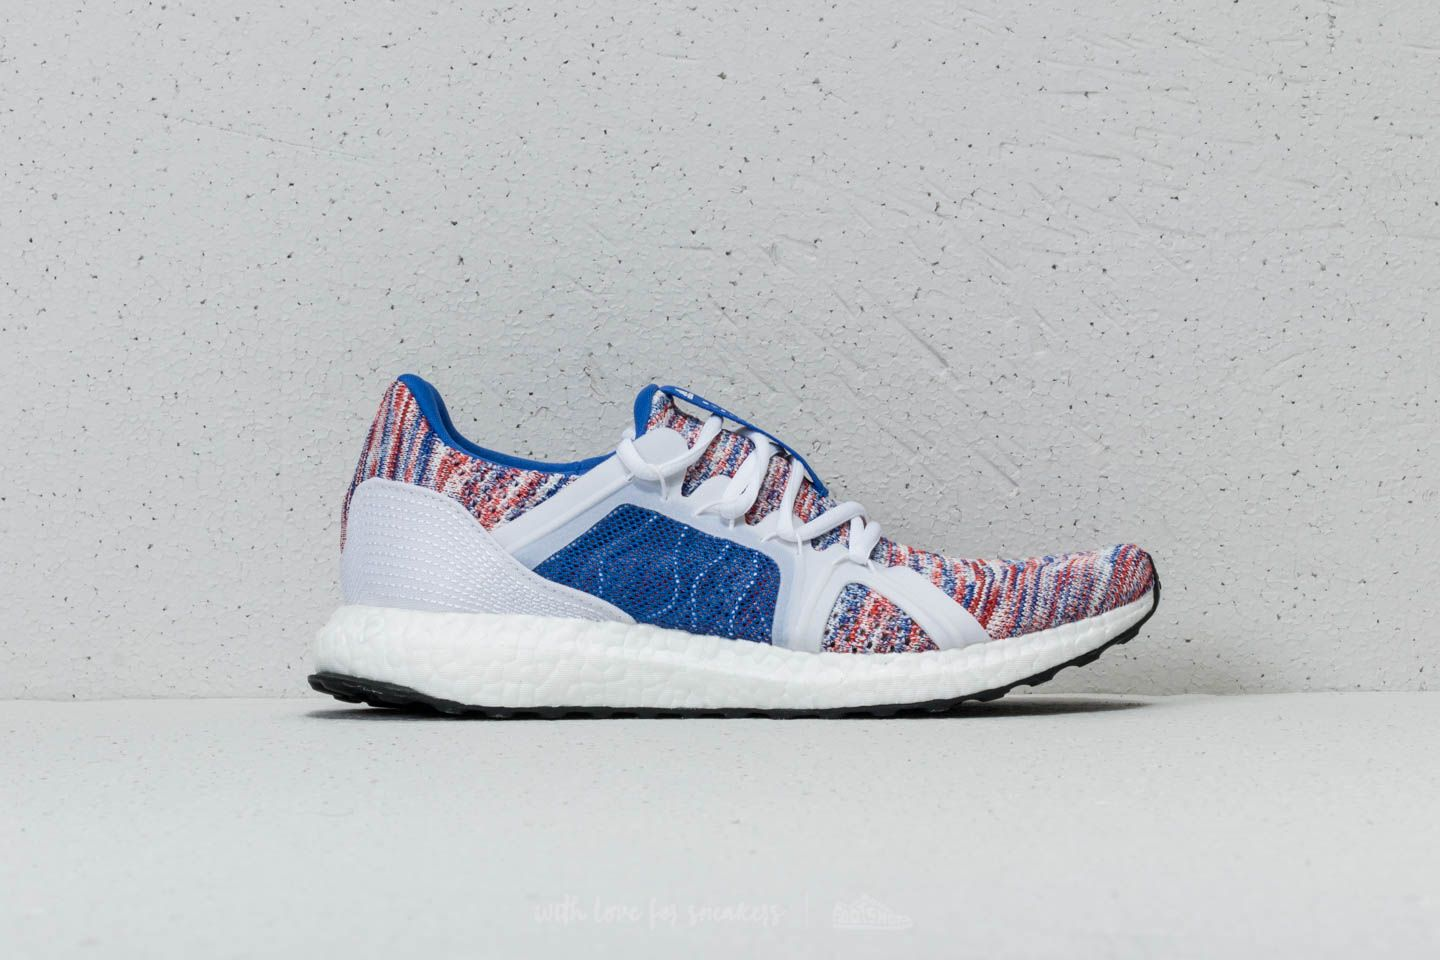 adidas x Stella McCartney Ultraboost Parley Hi Res Blue Core White Dark Callisto | Footshop